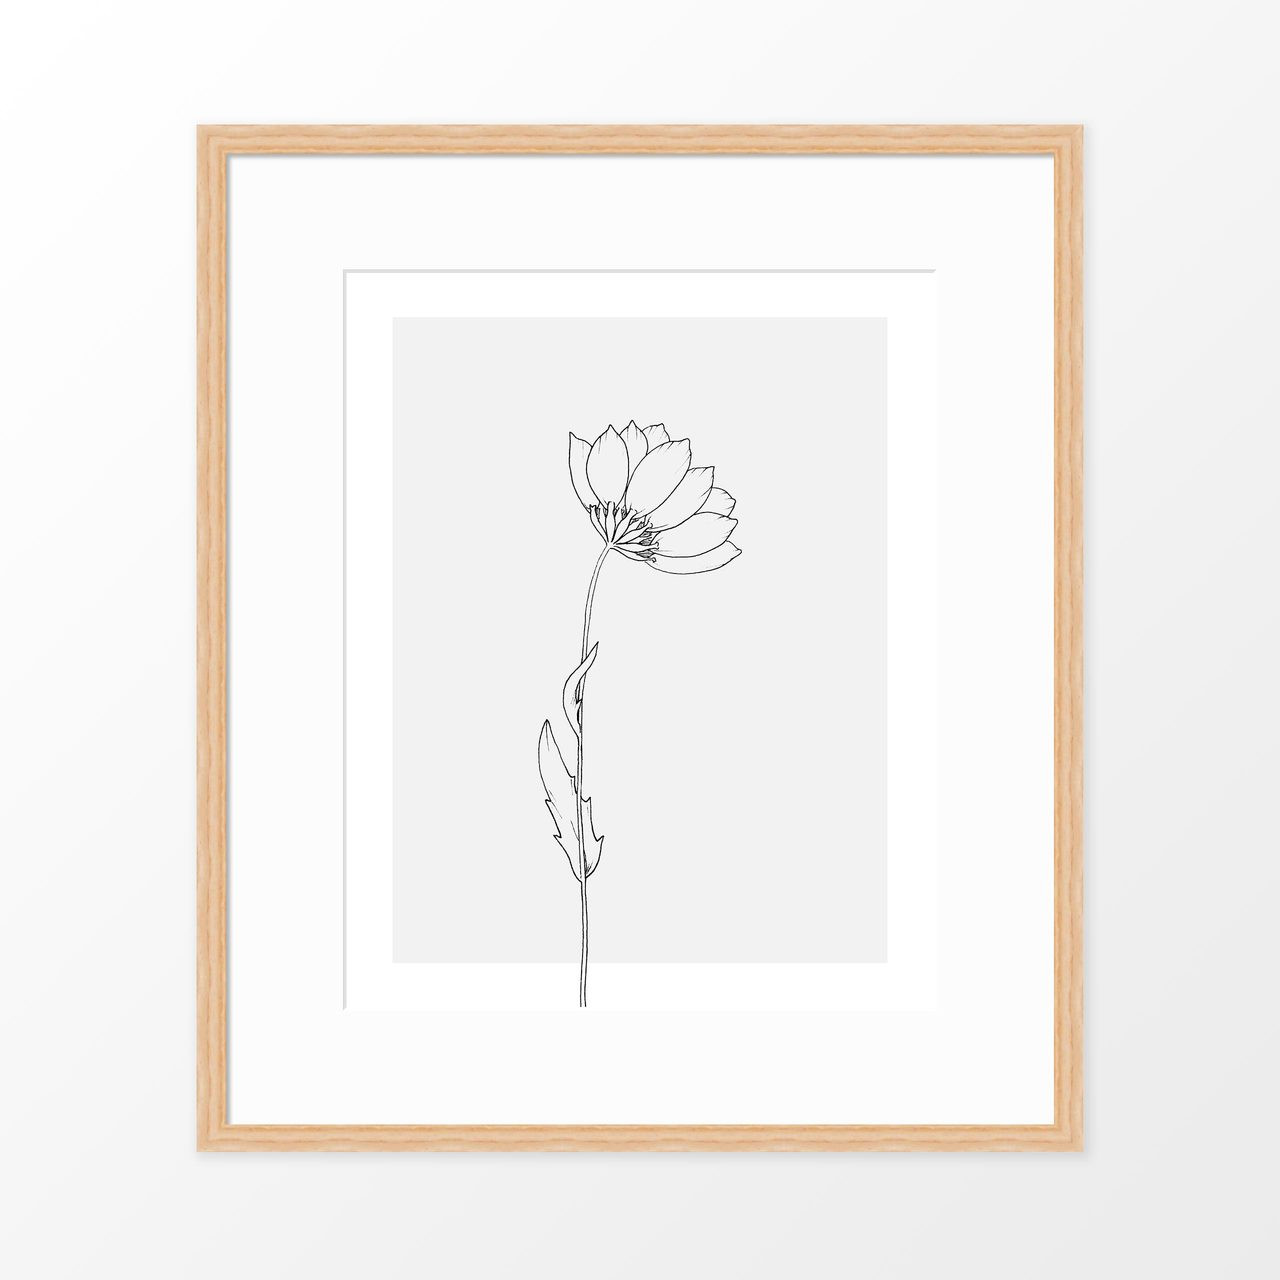 'Wildflower Study II' Art Print from The Printed Home